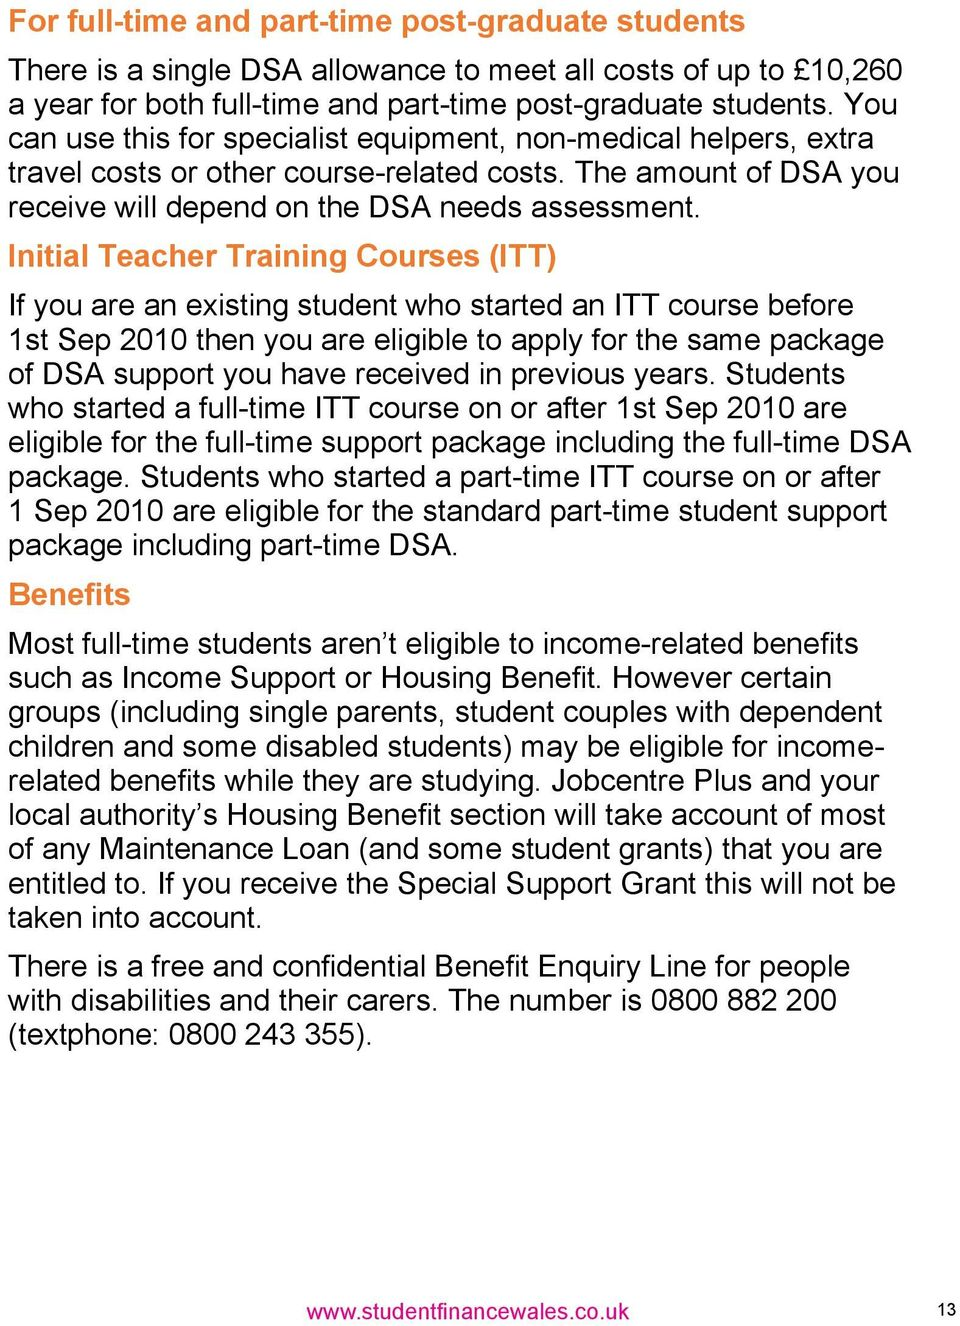 Initial Teacher Training Courses (ITT) If you are an existing student who started an ITT course before 1st Sep 2010 then you are eligible to apply for the same package of DSA support you have